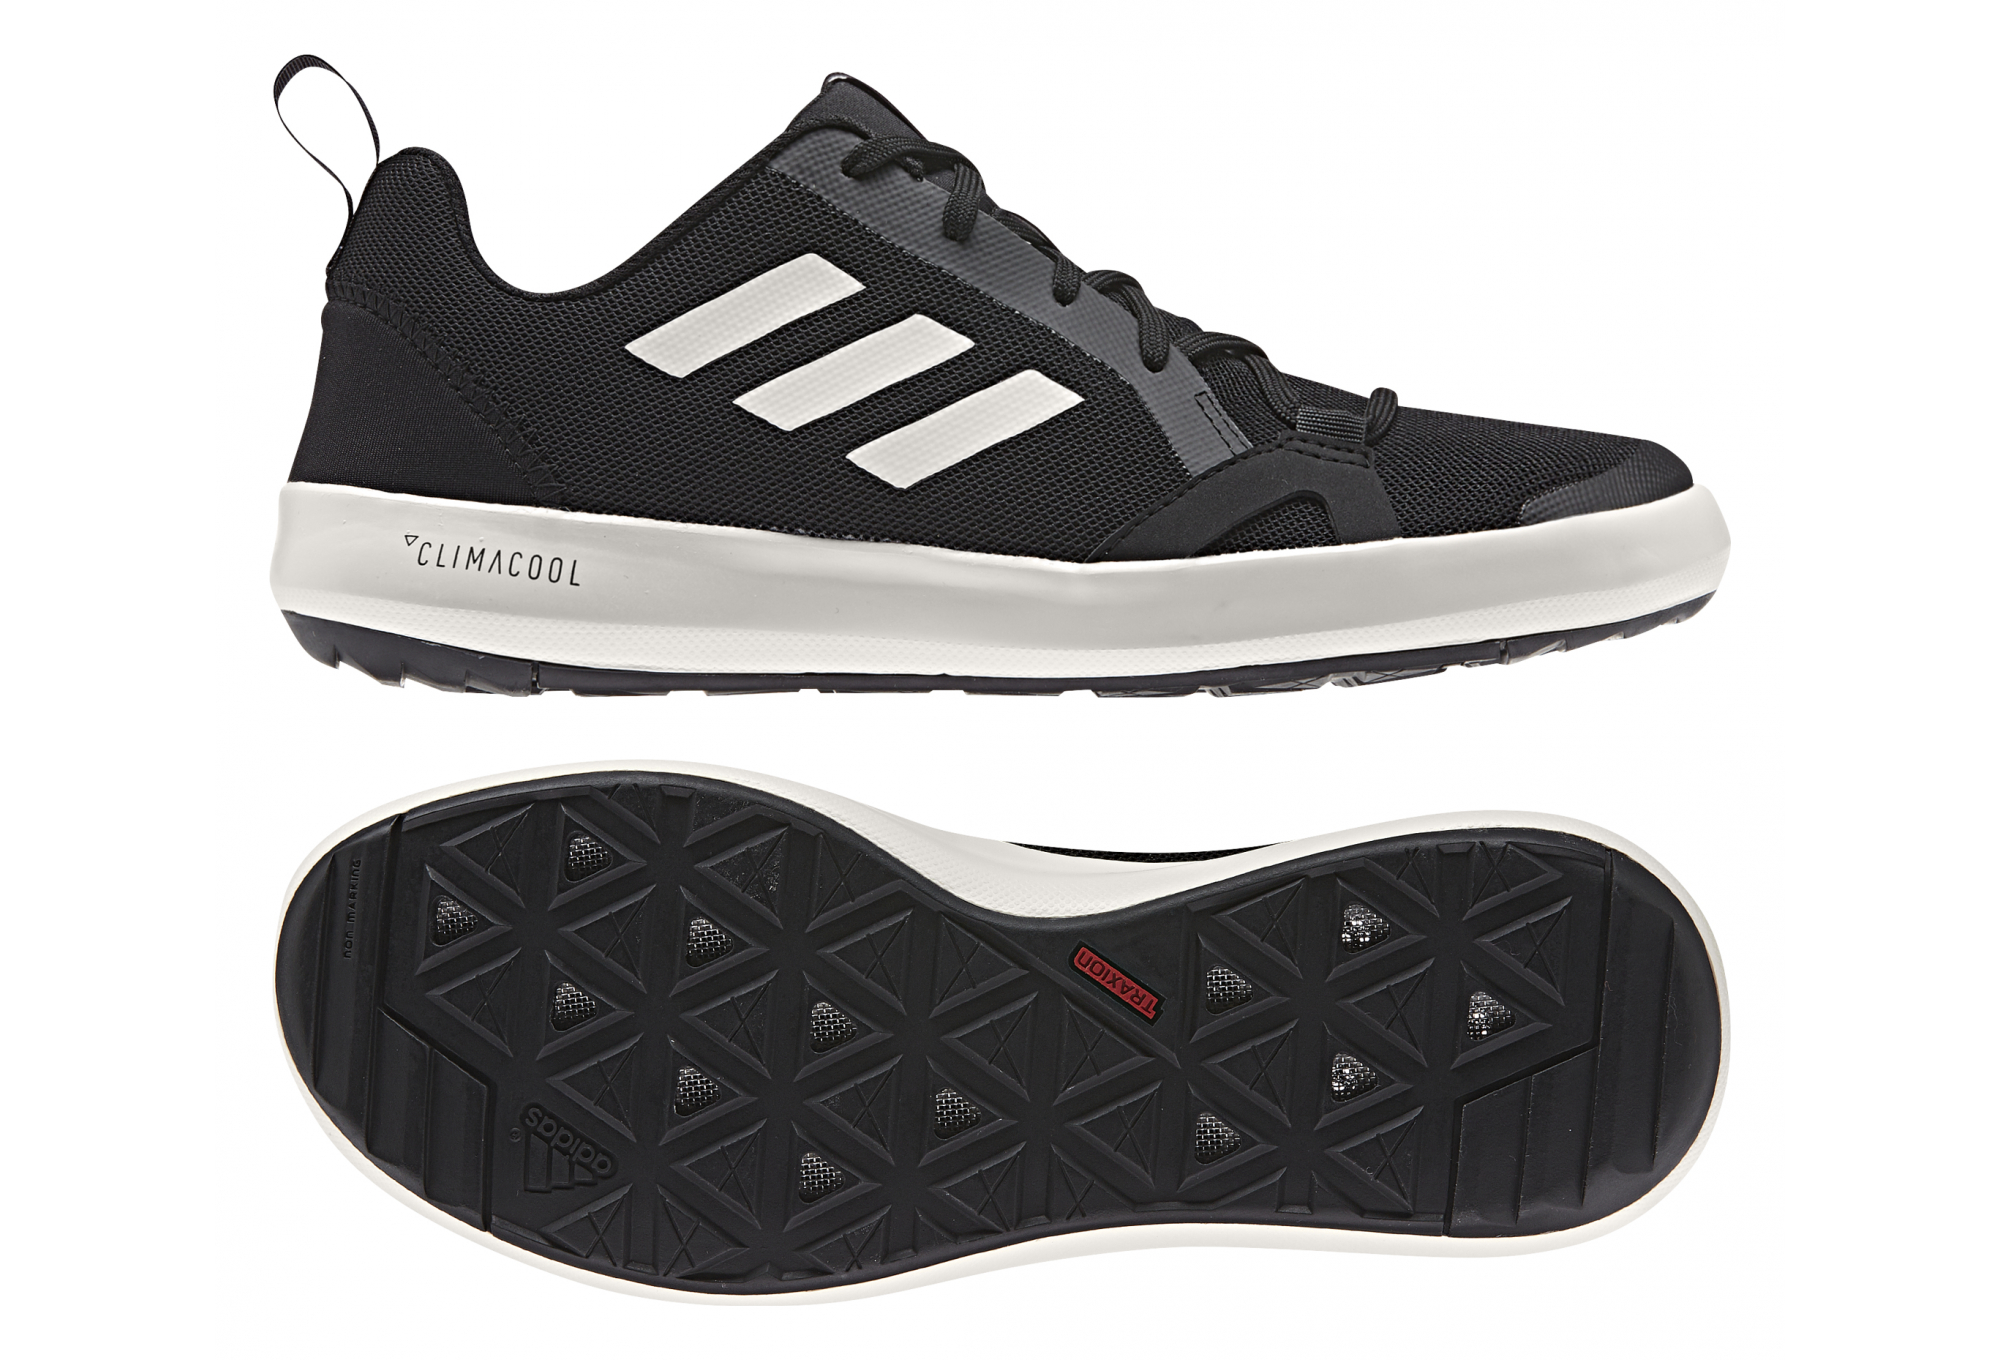 Climacool Adidas Chaussures Chaussures Boat Terrex Terrex Climacool Adidas Boat Rj35A4L